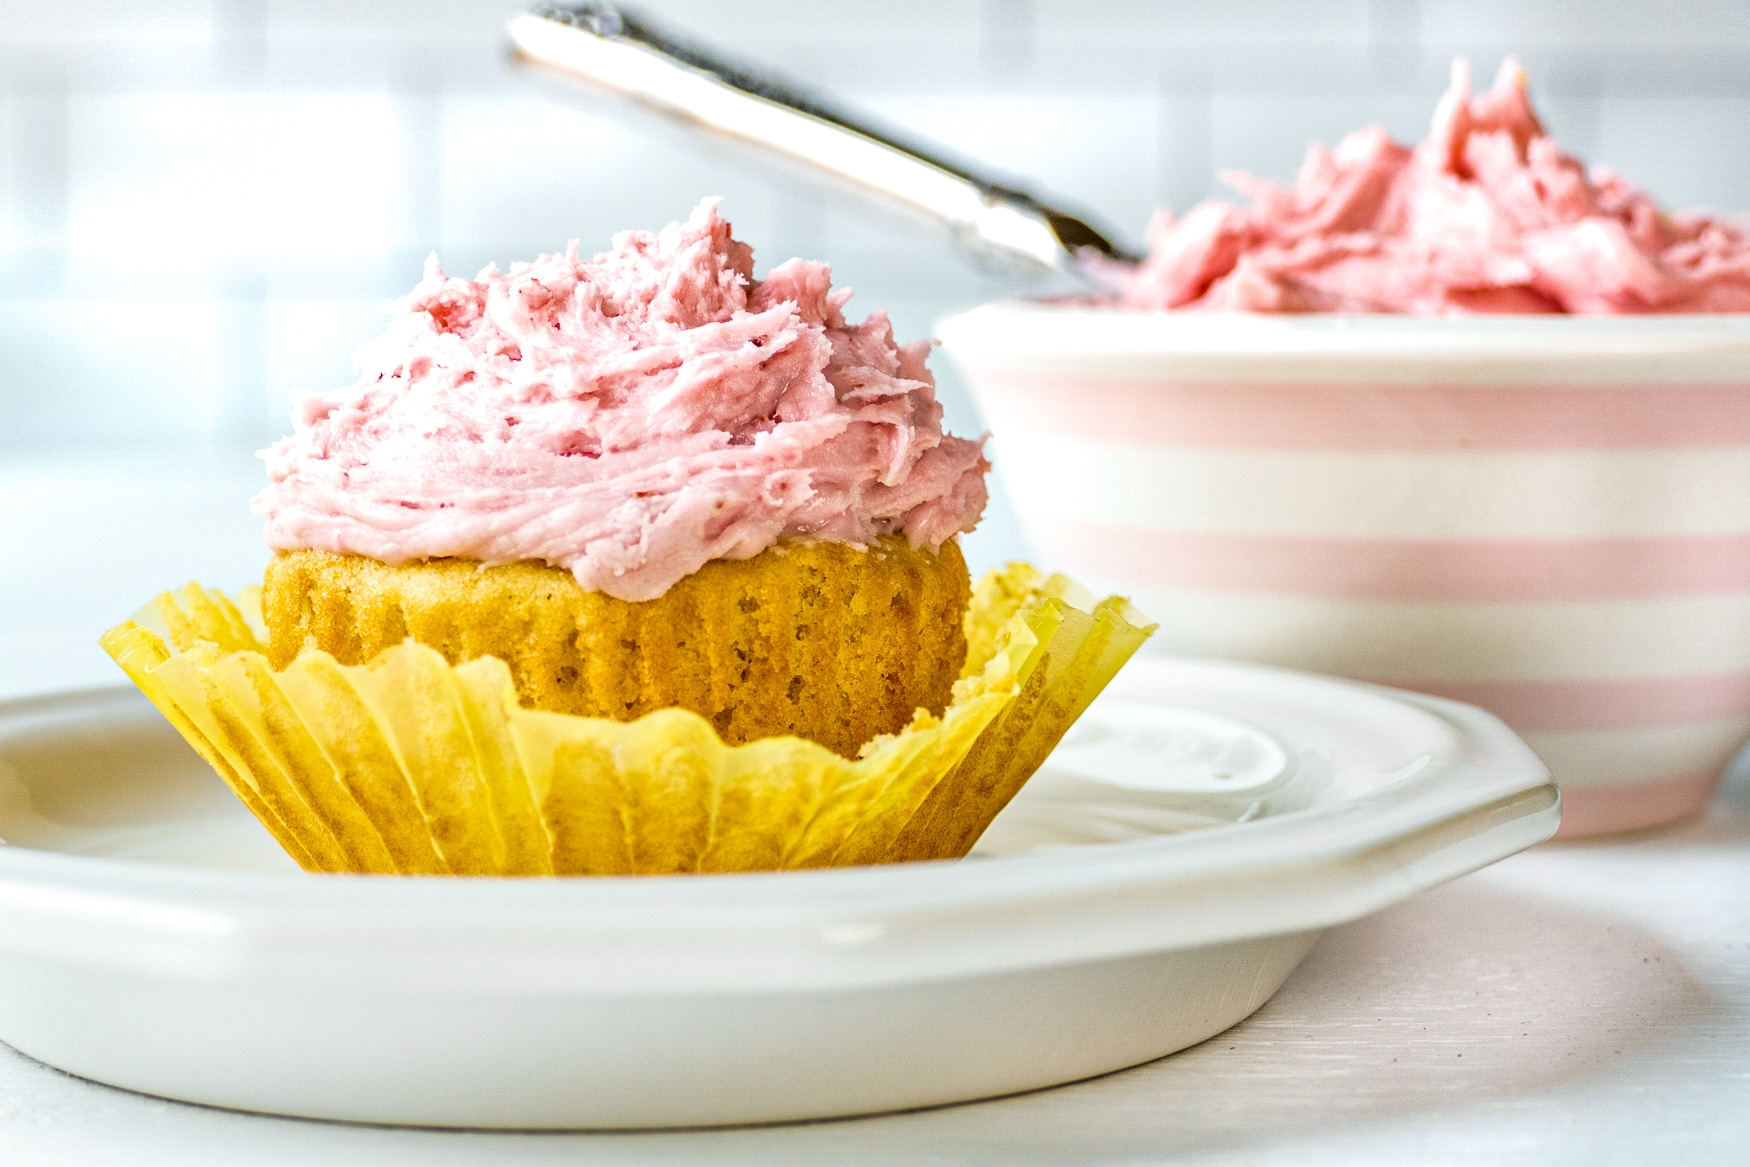 A frosted cupcake on a white plate sits in front of a bowl of raspberry buttercream.